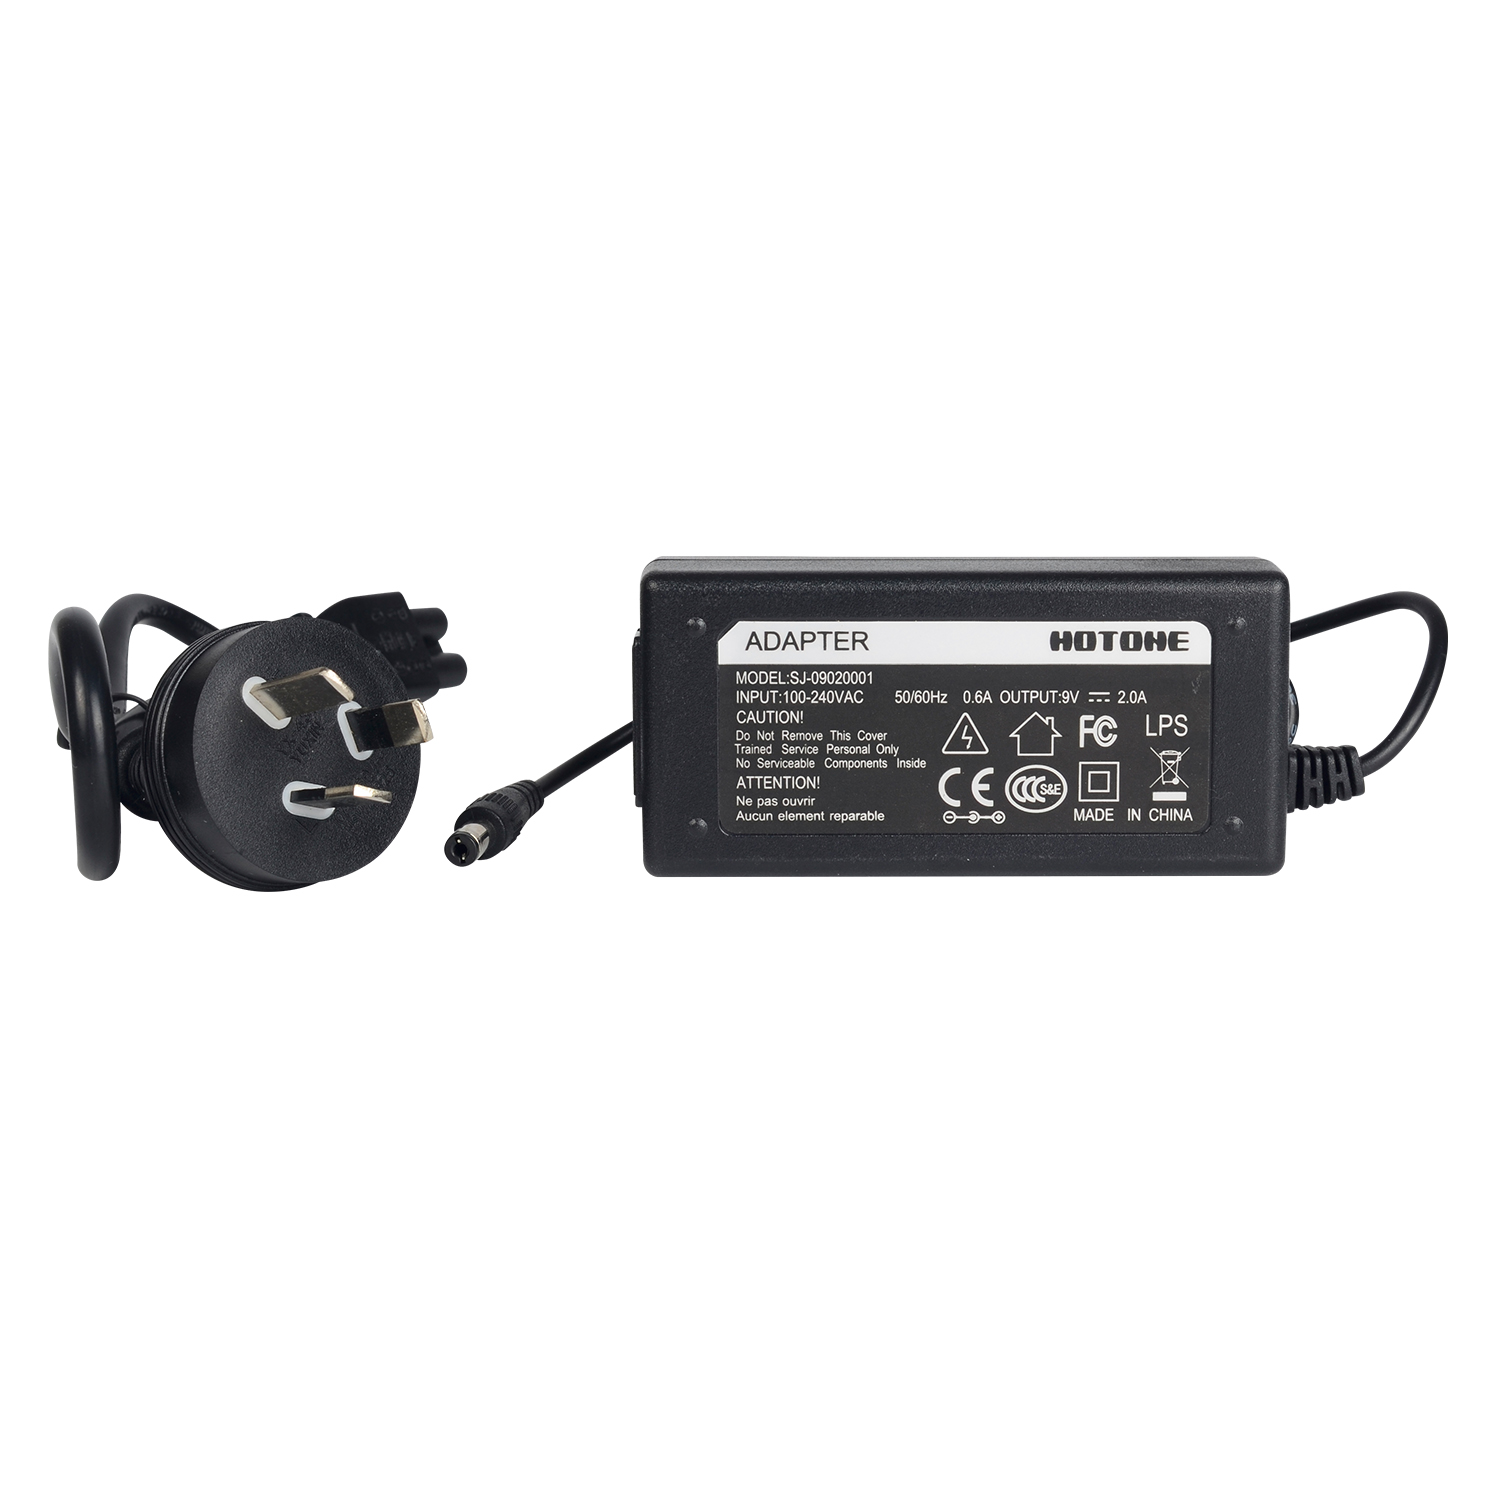 Hotone 9V2A Power Adapter Negative Center Noiseless 100-240V Converter AU Plug I Type for Guitar Effect Pedal Power Supply акустика центрального канала mt power elegance center black